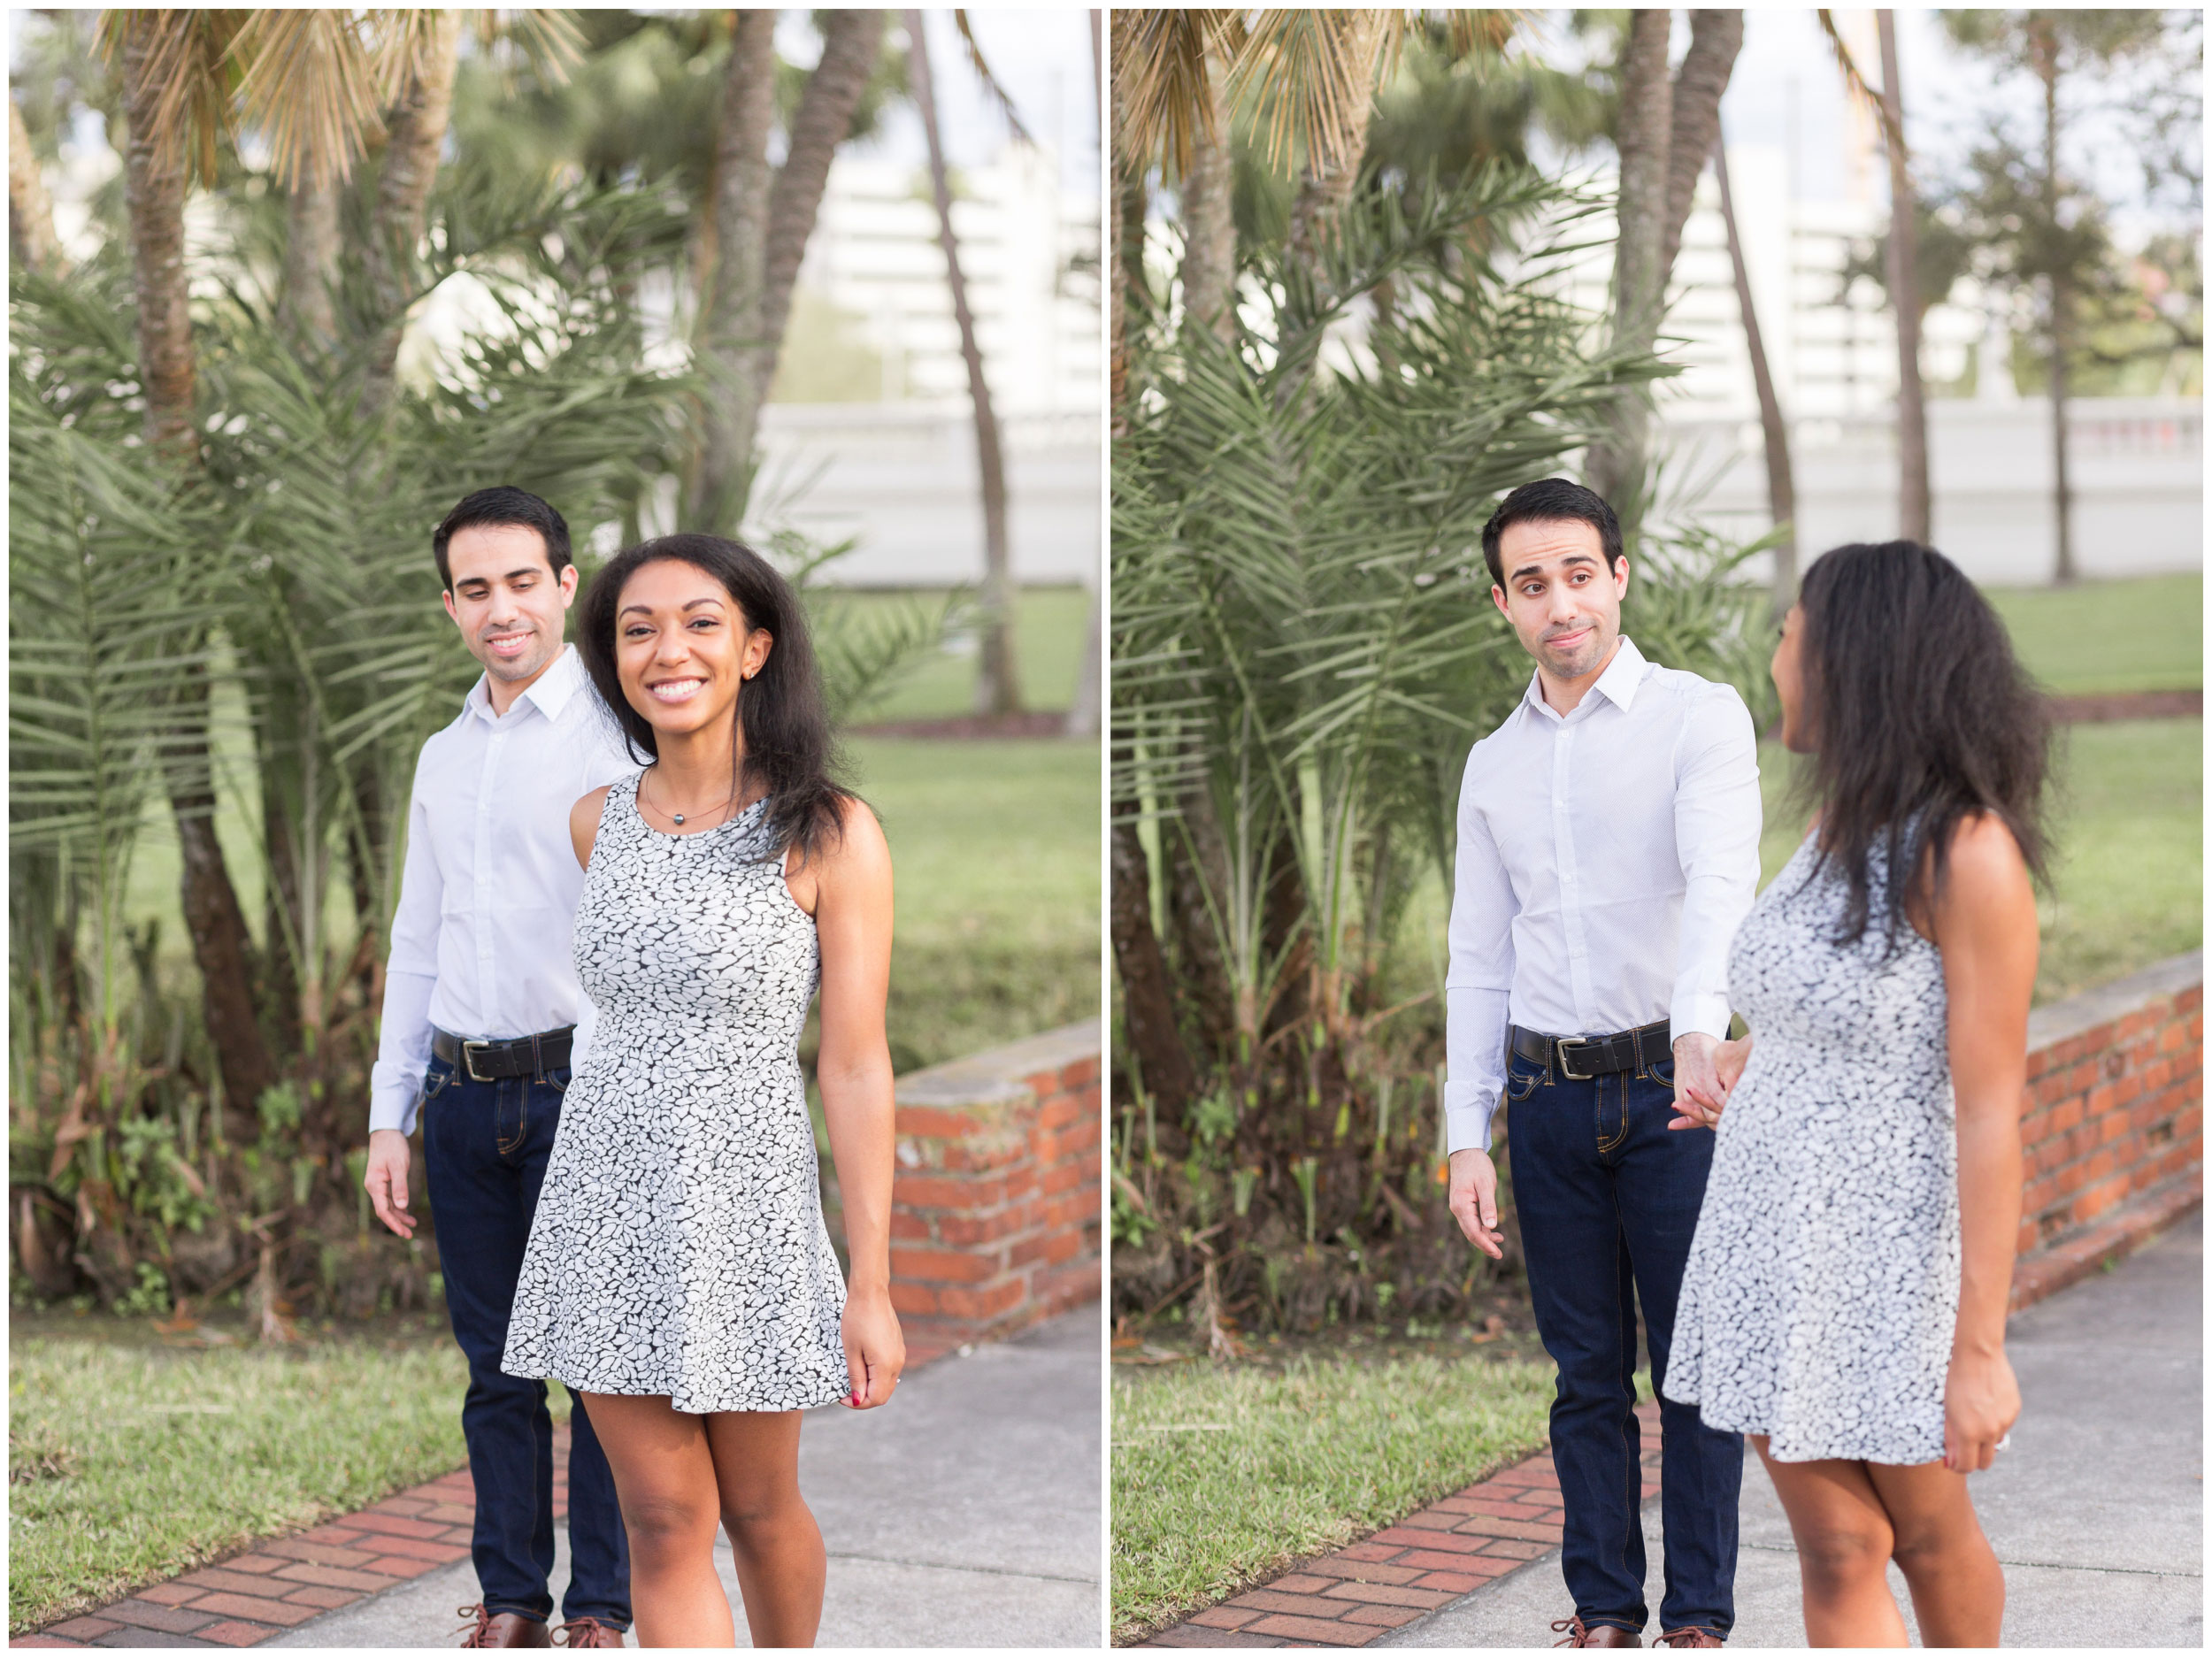 engagement-university-of-tampa-plant-park_0007.jpg